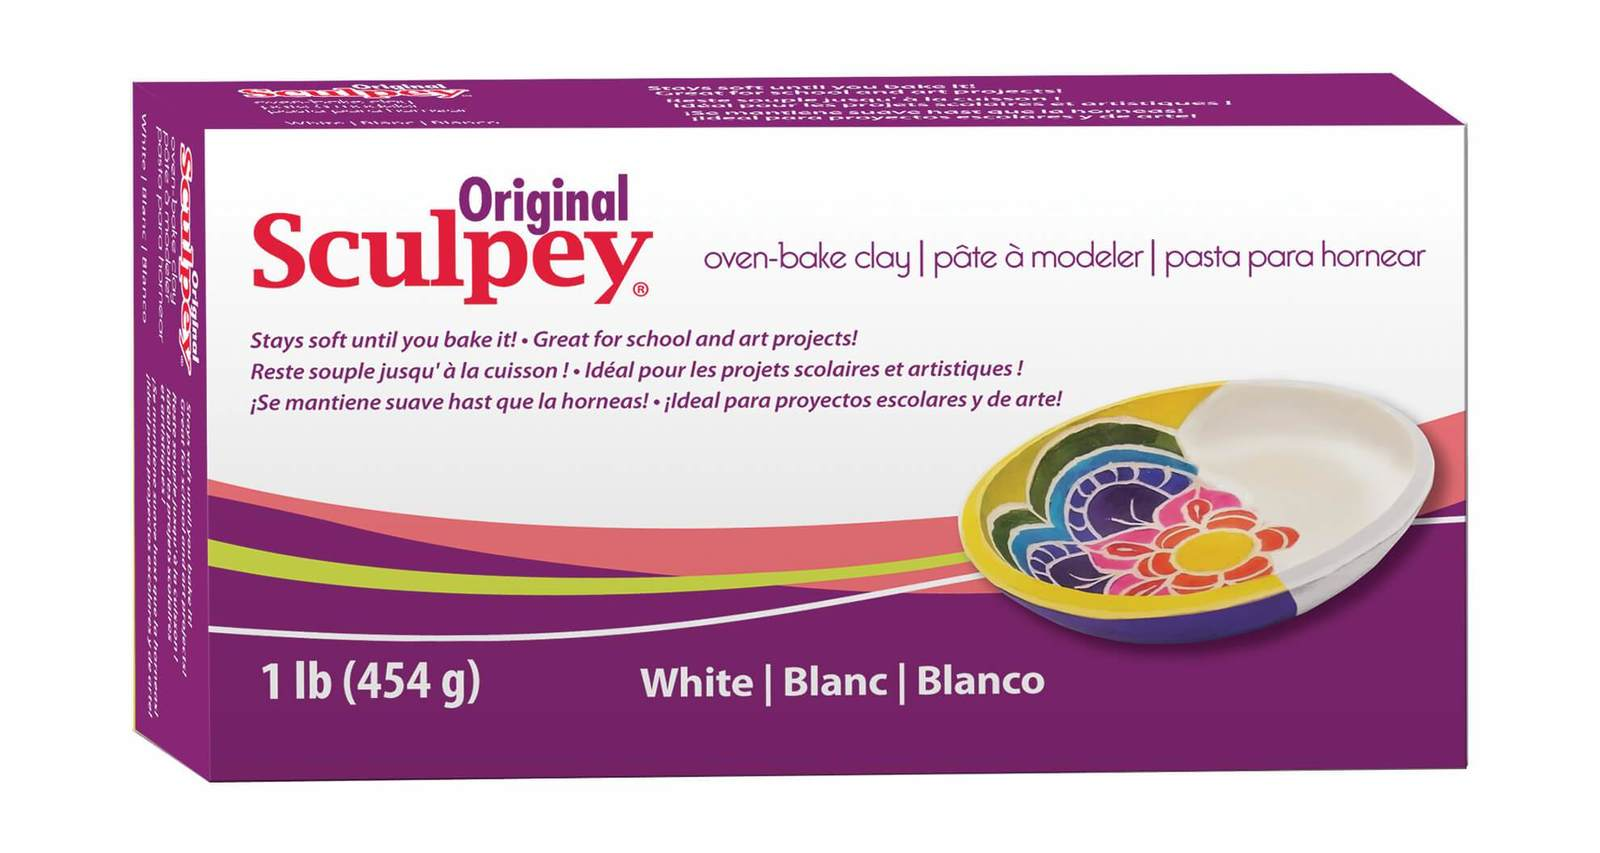 Sculpey Original Oven-Bake Clay - White (454g) image